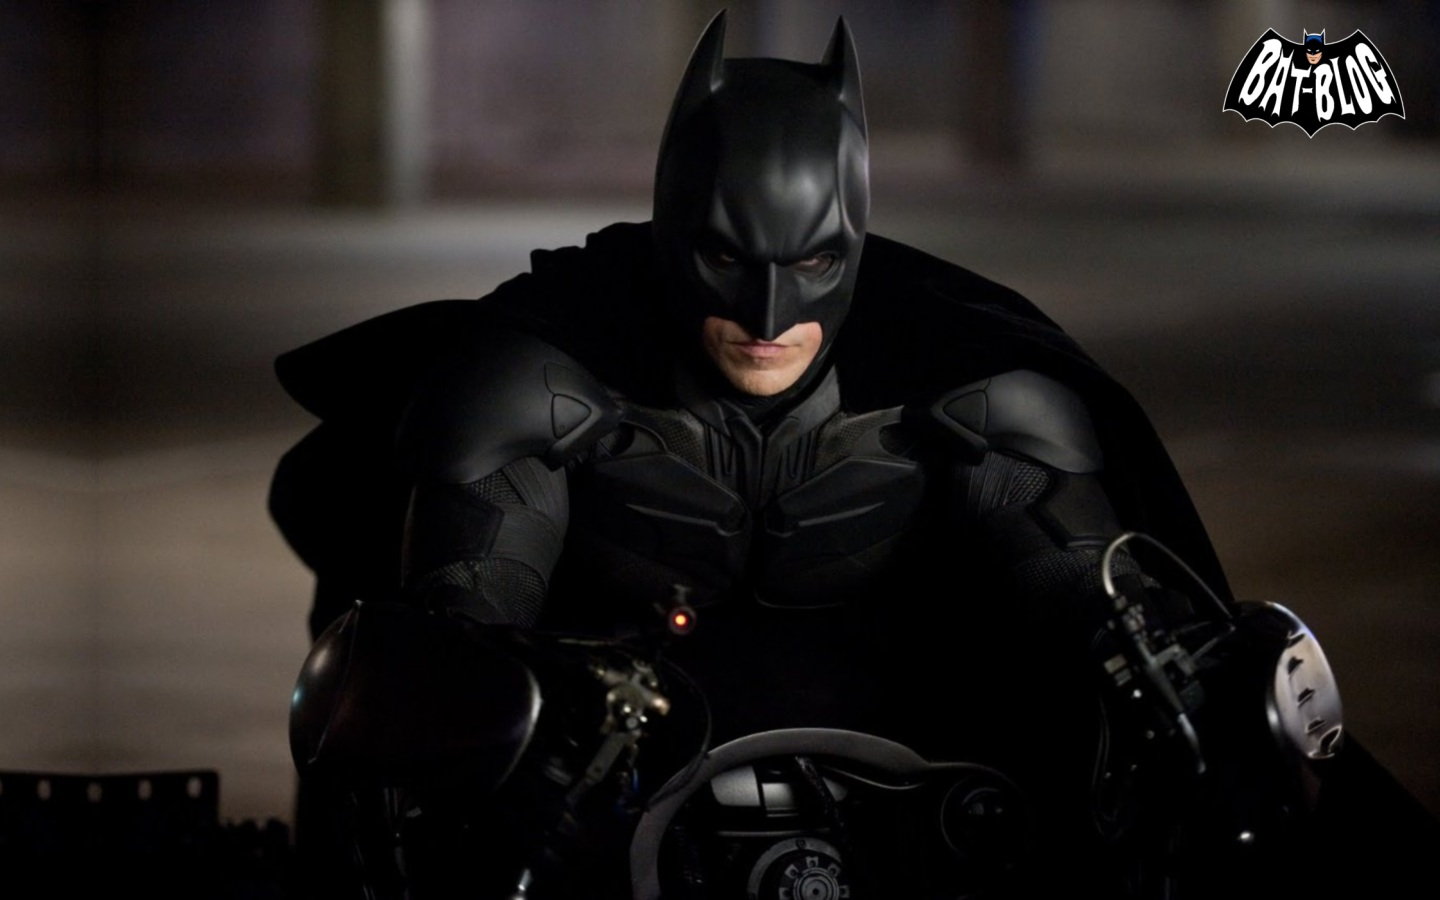 BAT - BLOG : BATMAN TOYS and COLLECTIBLES: December 2011